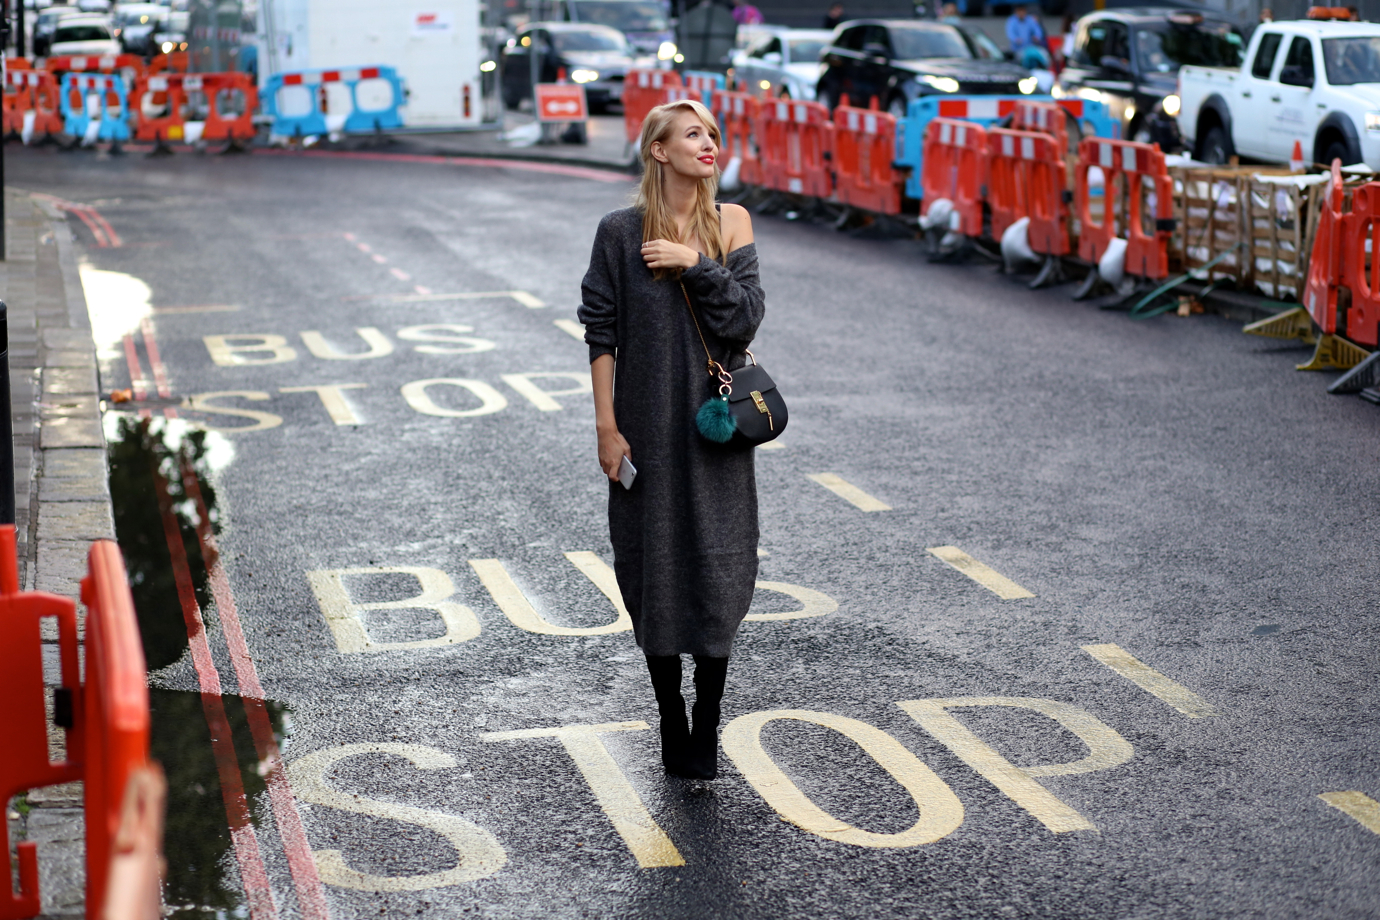 Streets_of_london_7